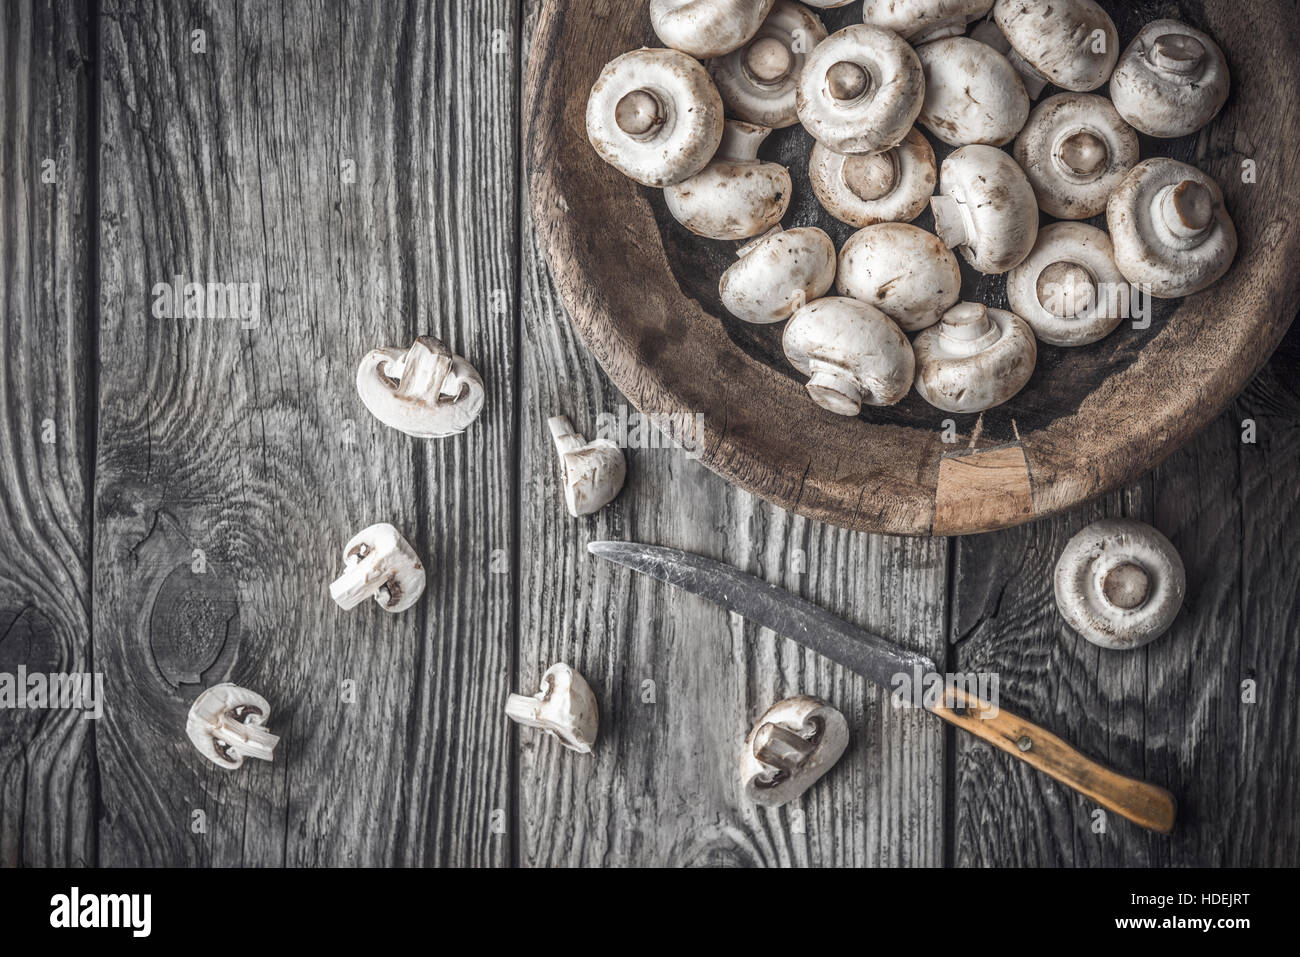 Champignon on the wooden bowl on the old table horizontal - Stock Image